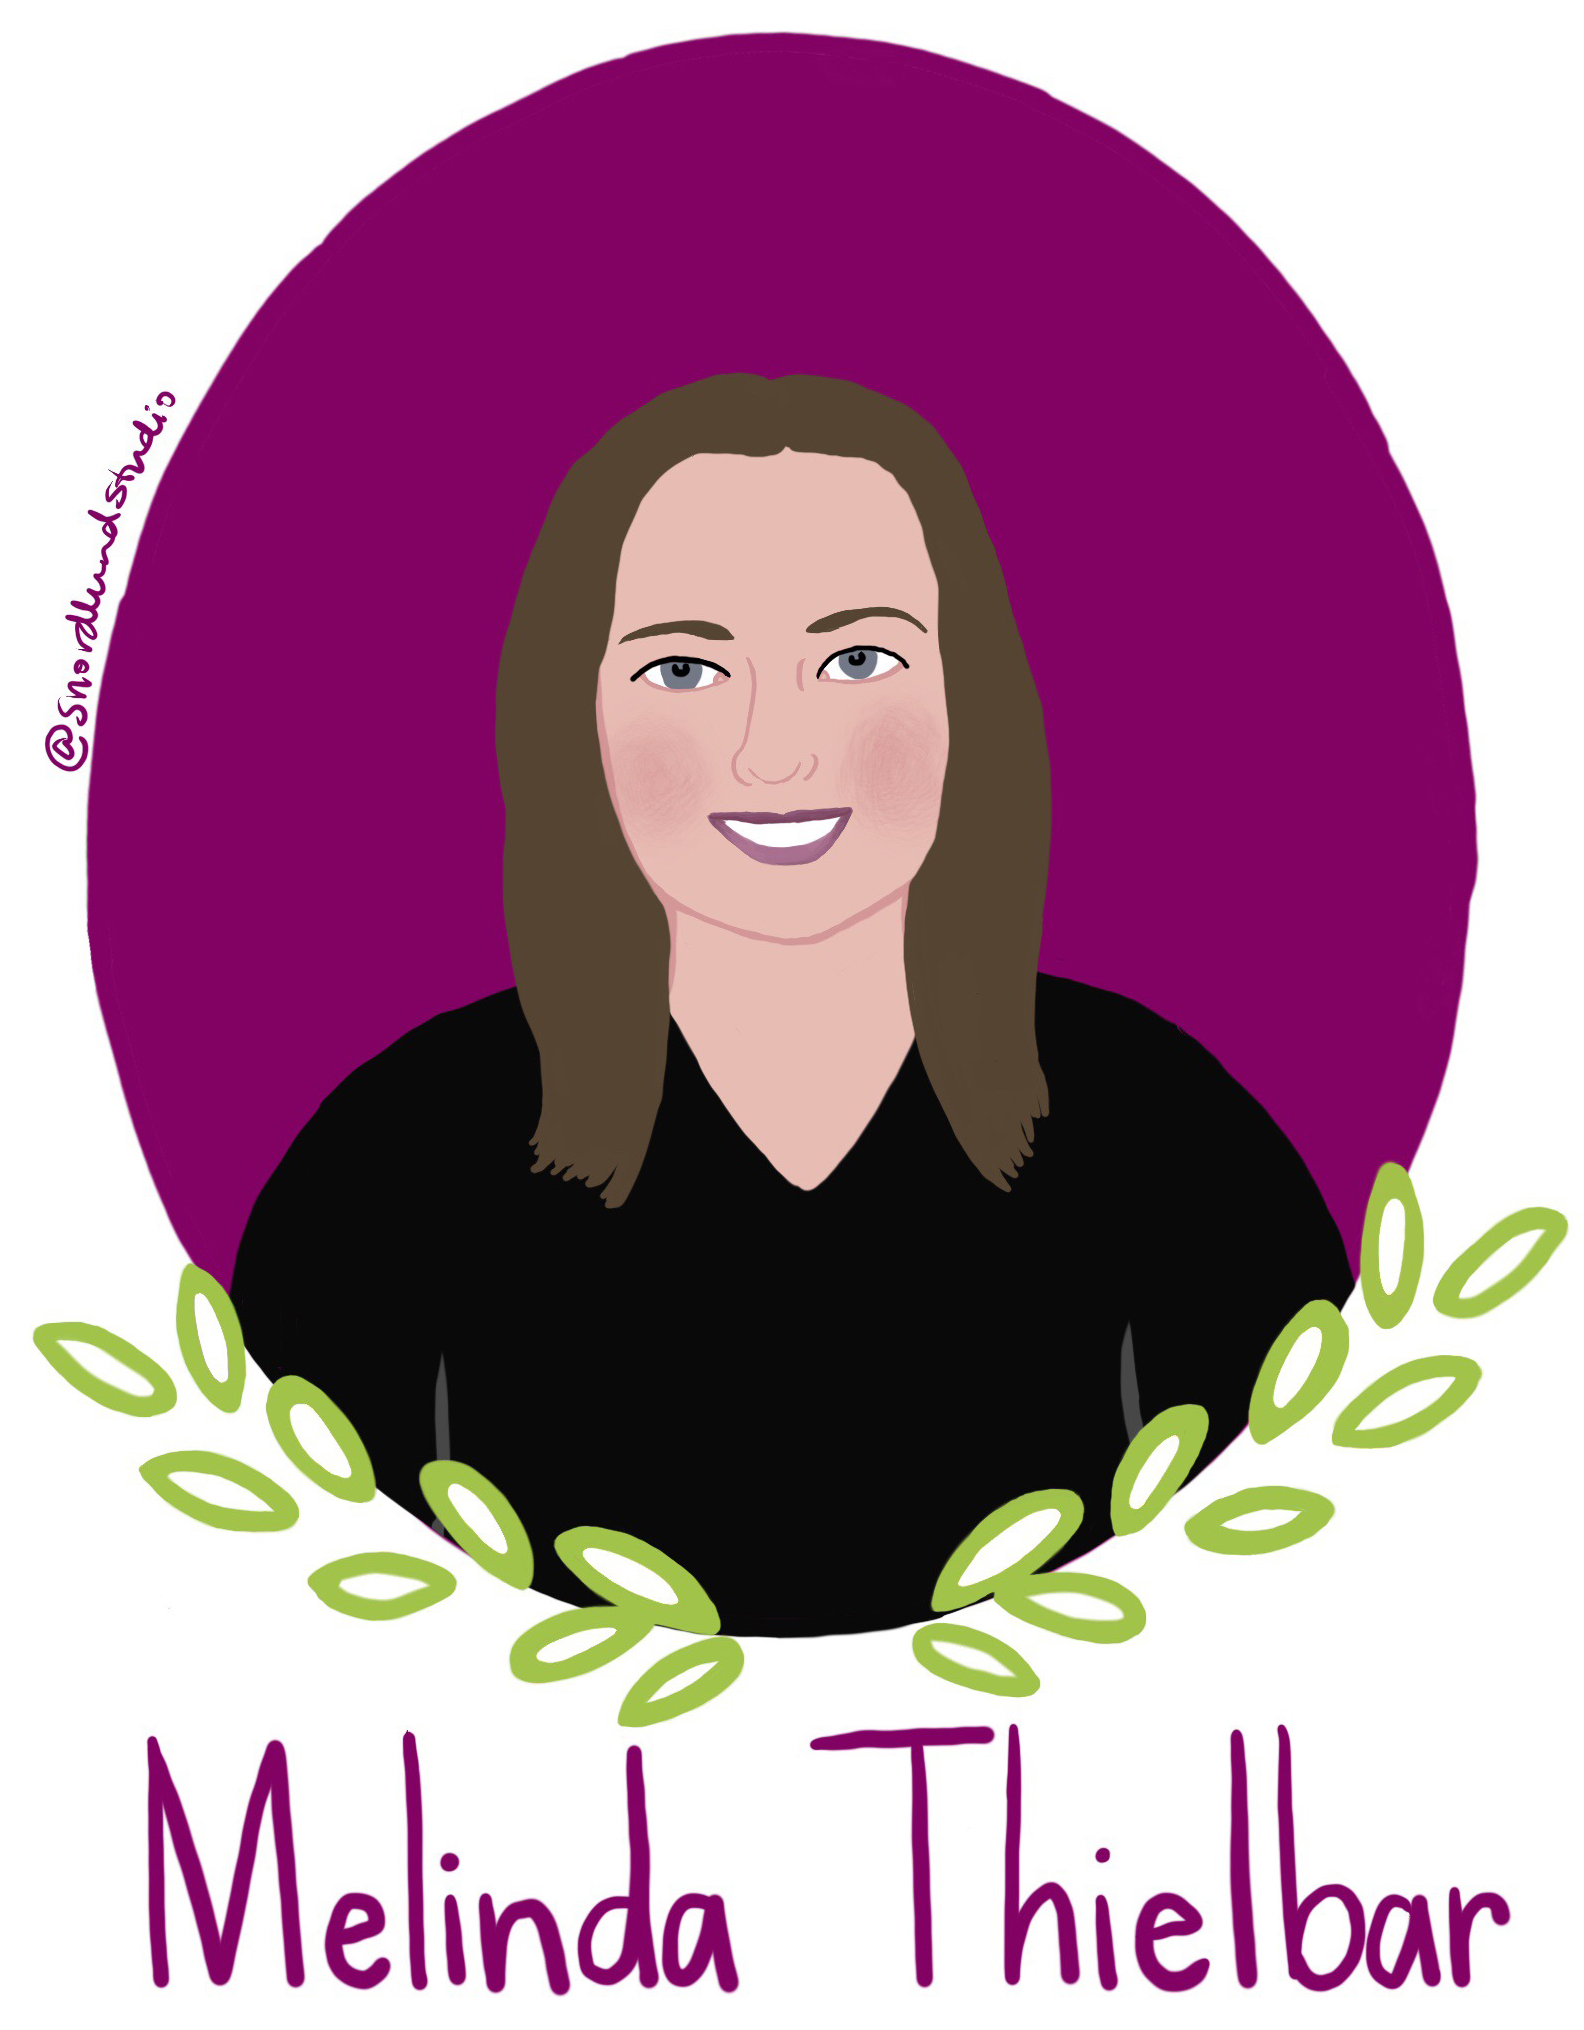 47. Melinda Thielbar - Melinda Thielbar is a data scientist and children's books author.